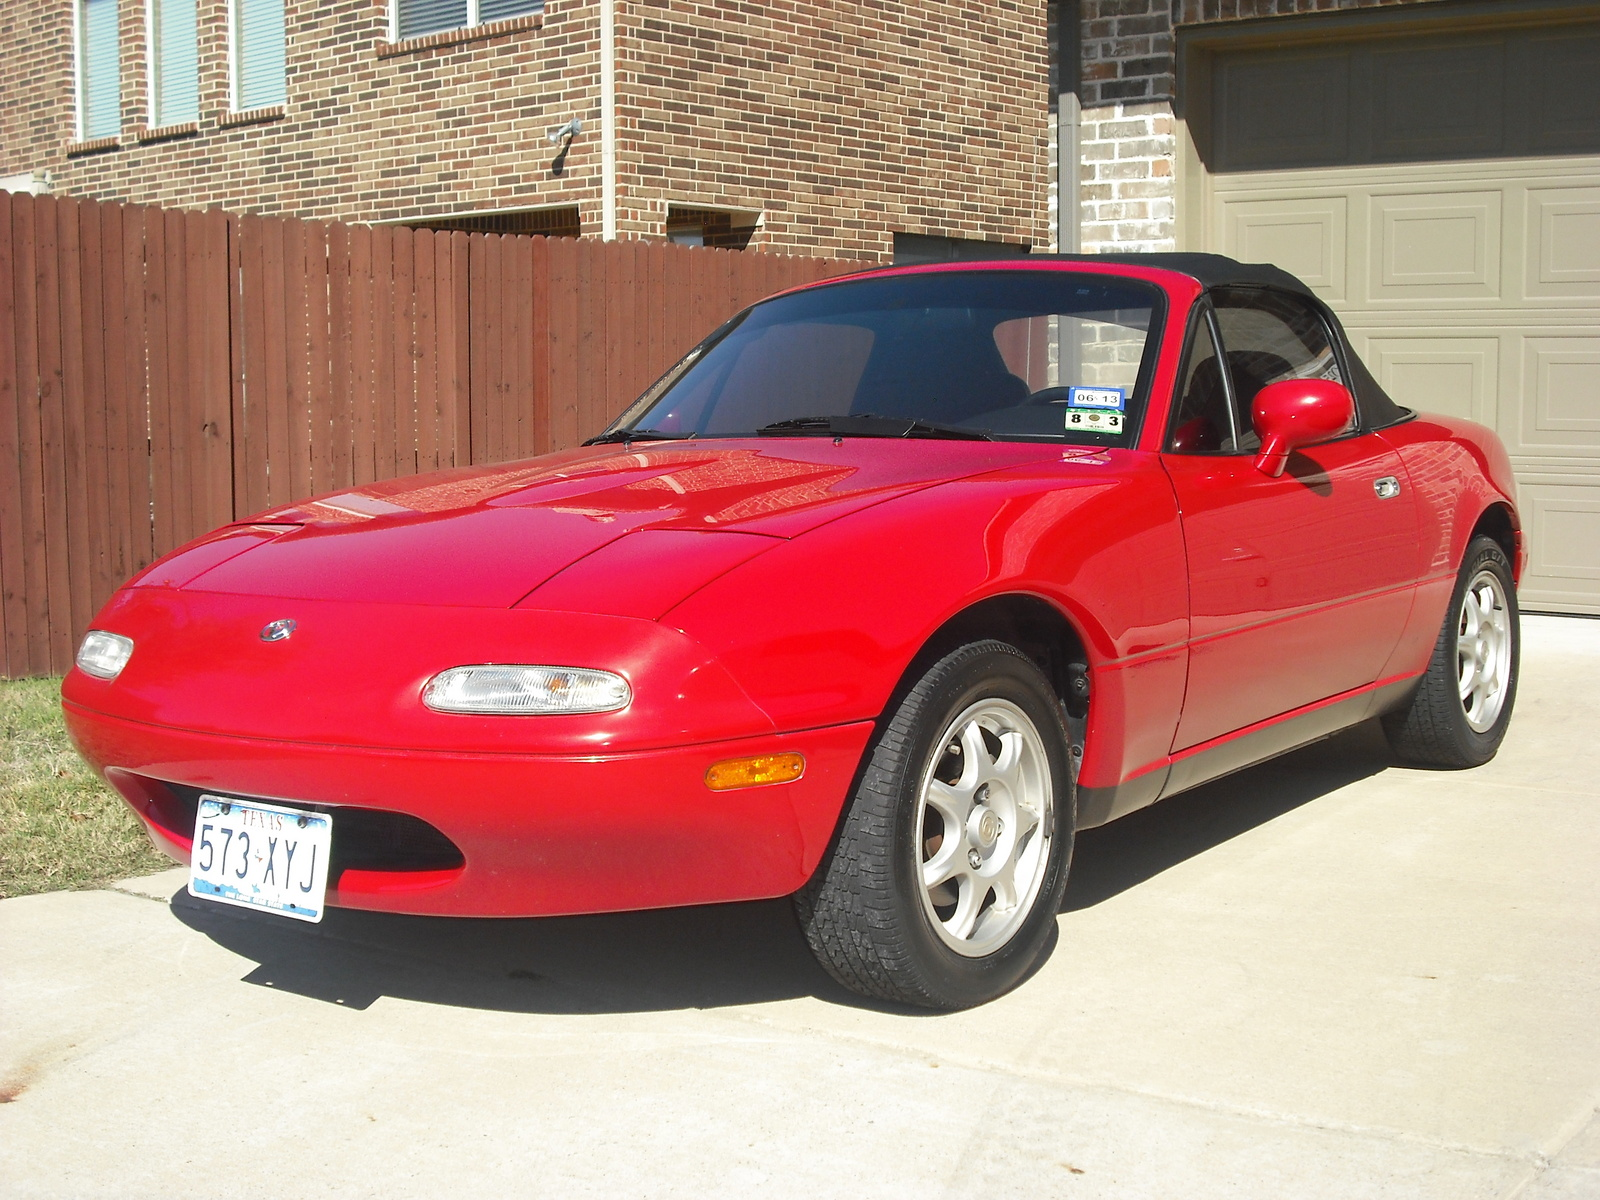 Picture of 1997 Mazda MX-5 Miata Base, exterior